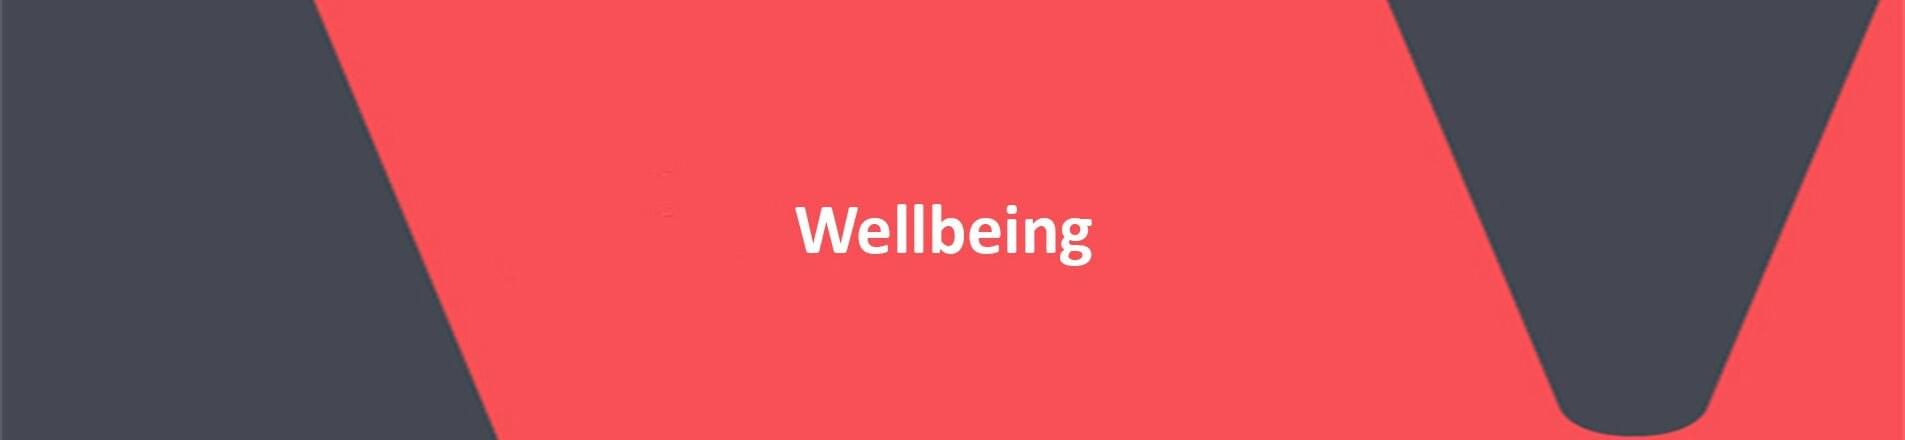 Wellbeing on red VERCIDA background